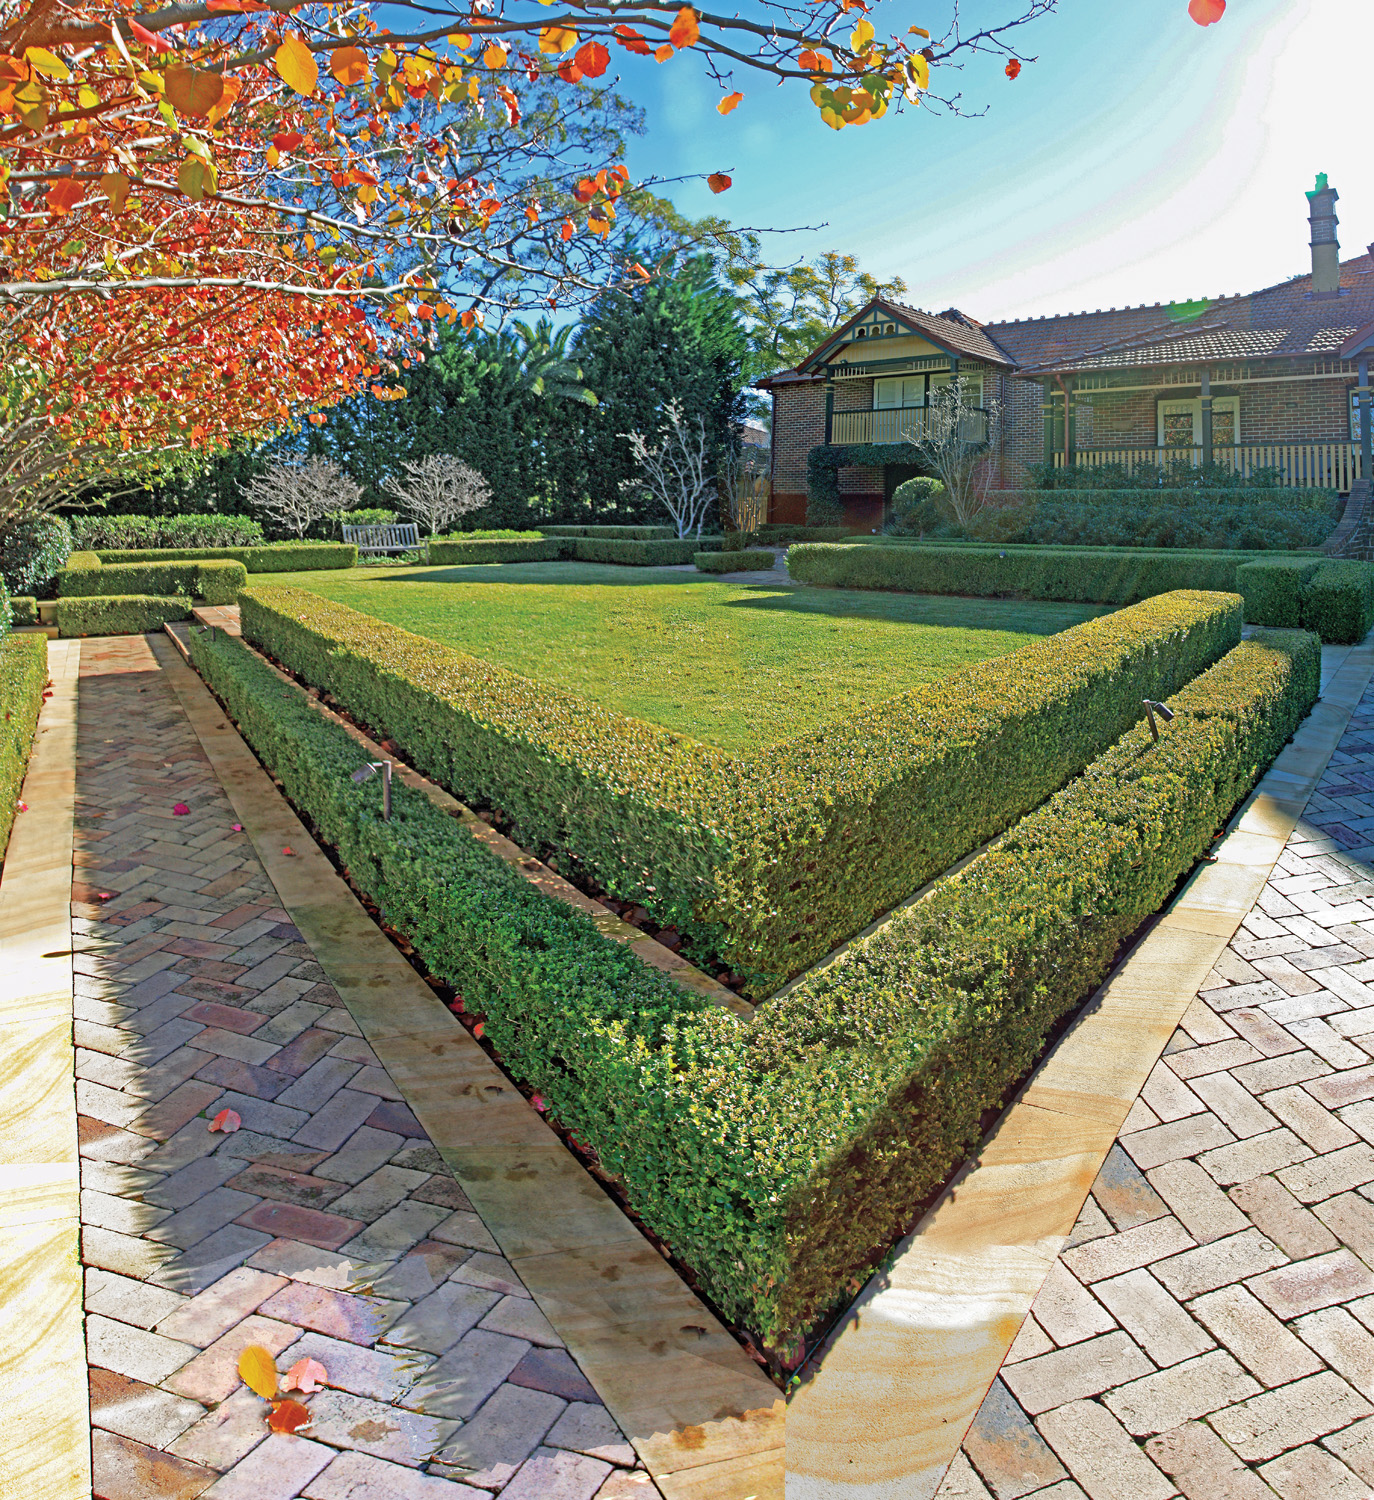 A Total Concept hedge and garden